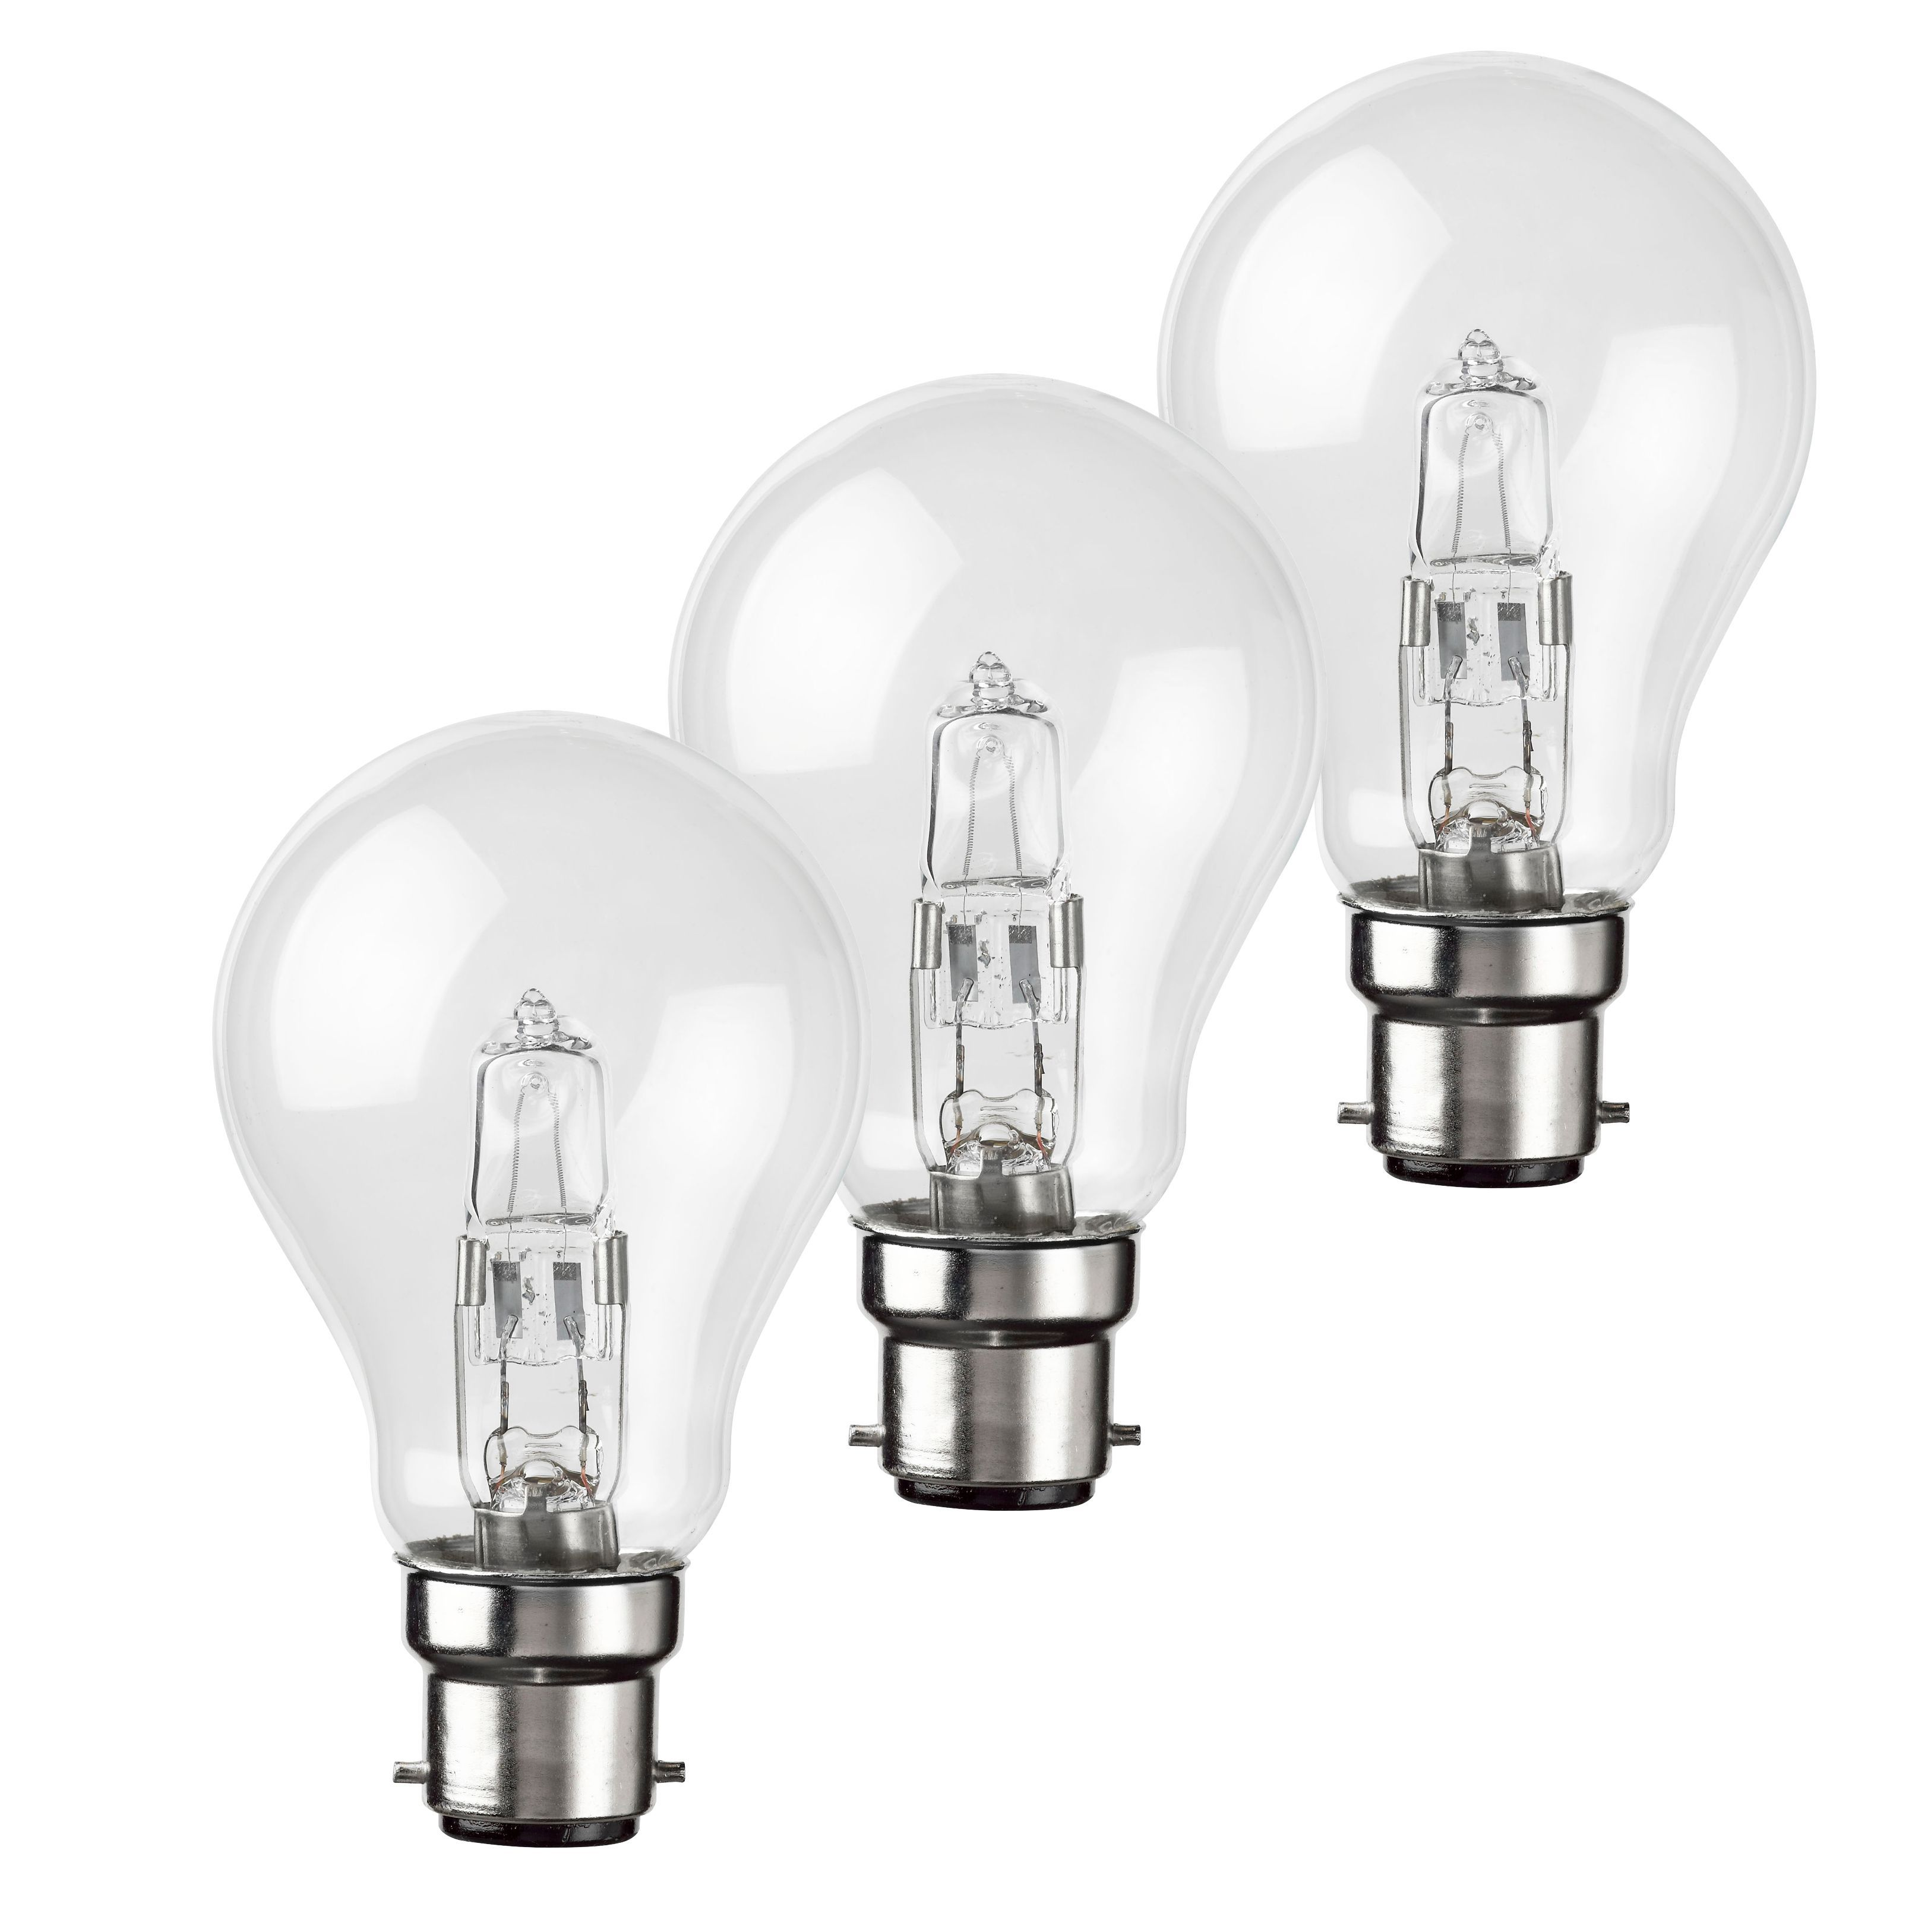 Diall B22 70W Halogen Eco Dimmable Gls Light Bulb, Pack